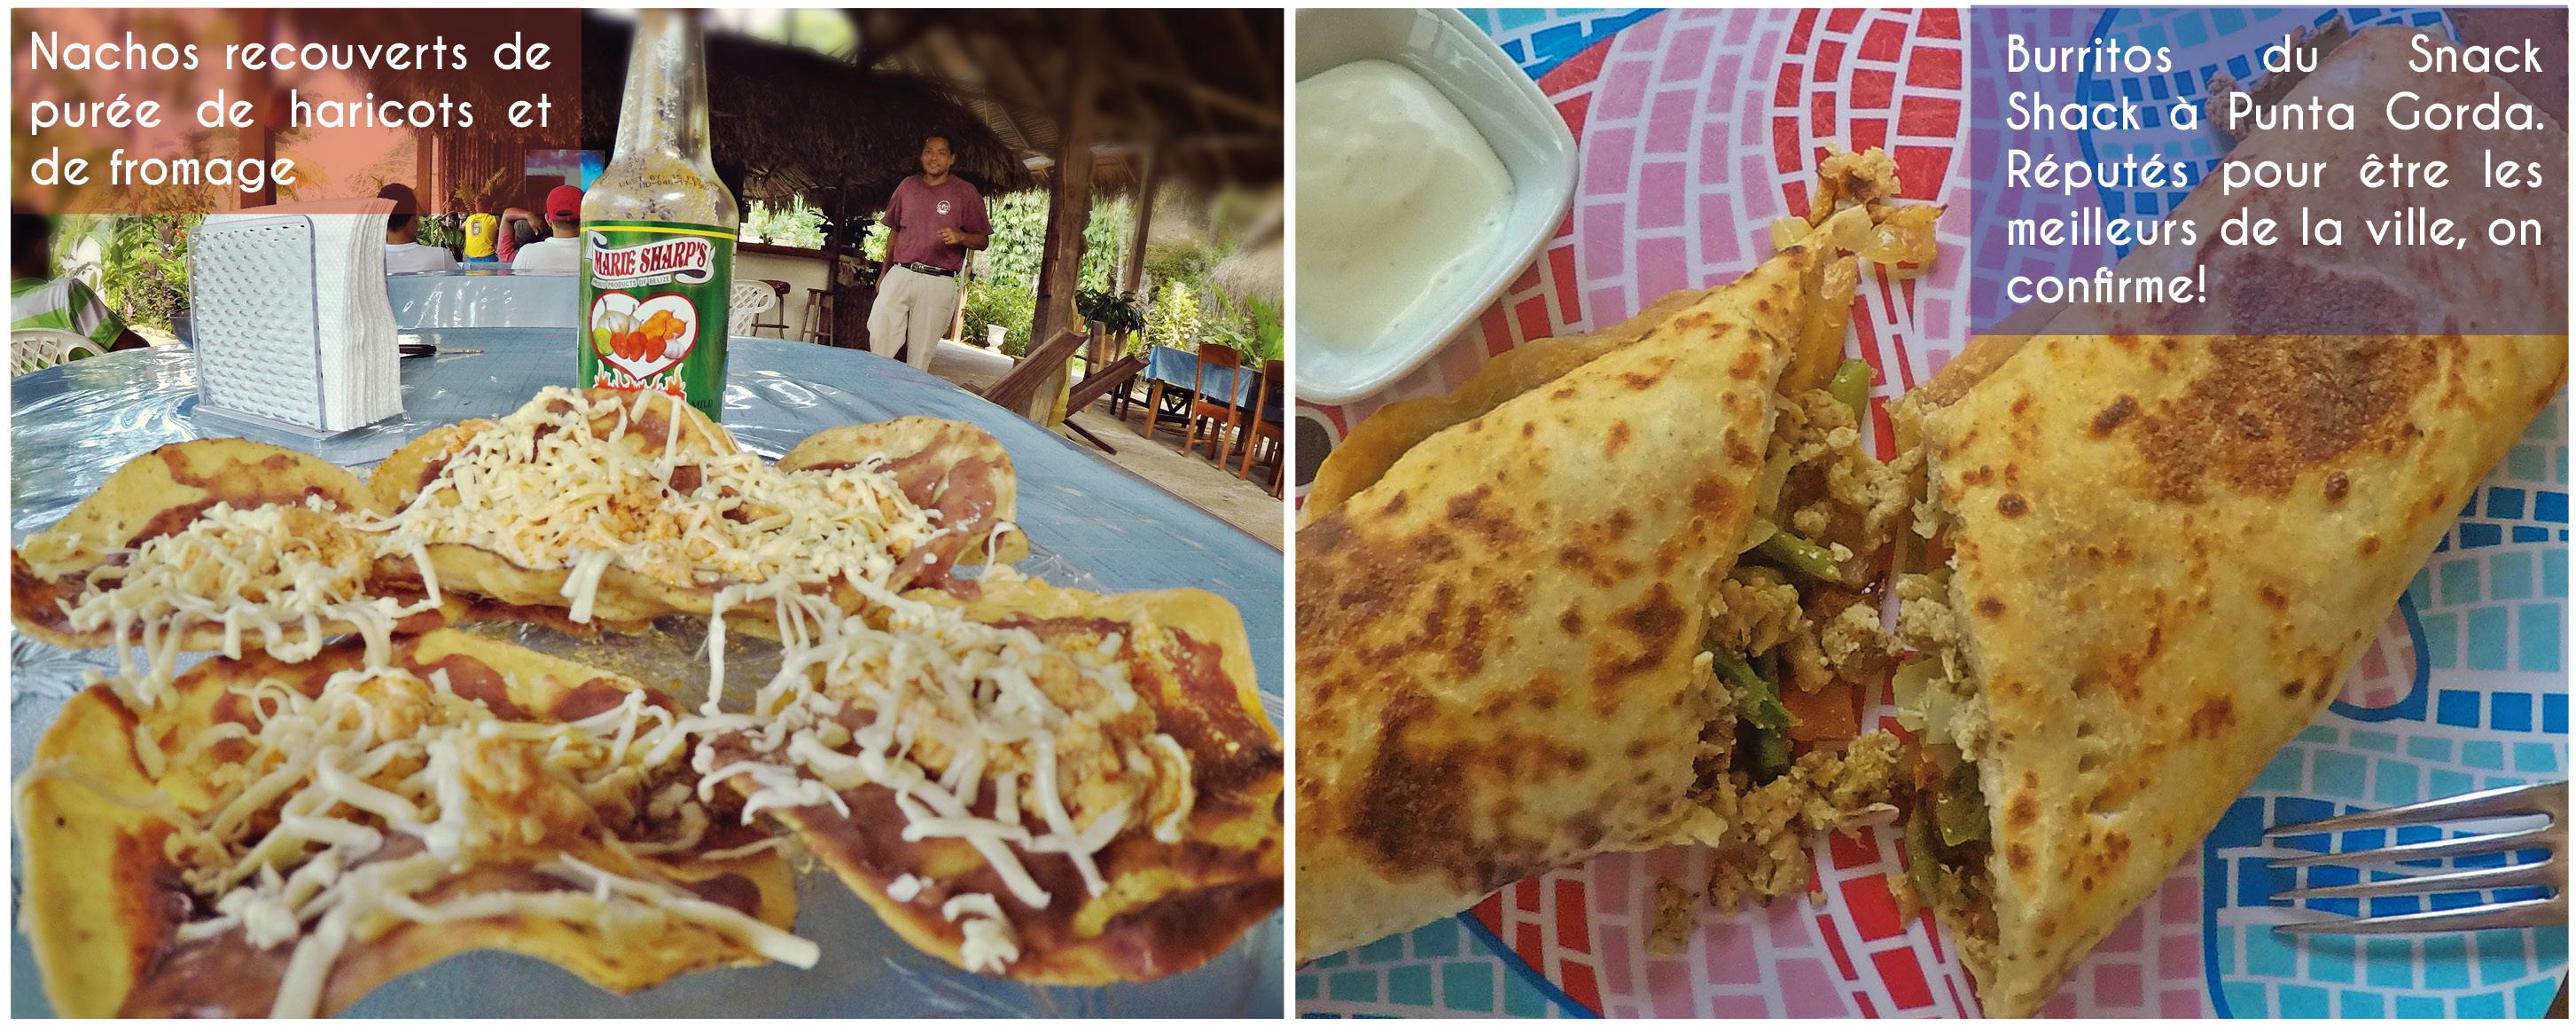 belize, cuisine, nachos, burritos, mexique, mexicains, tortillas